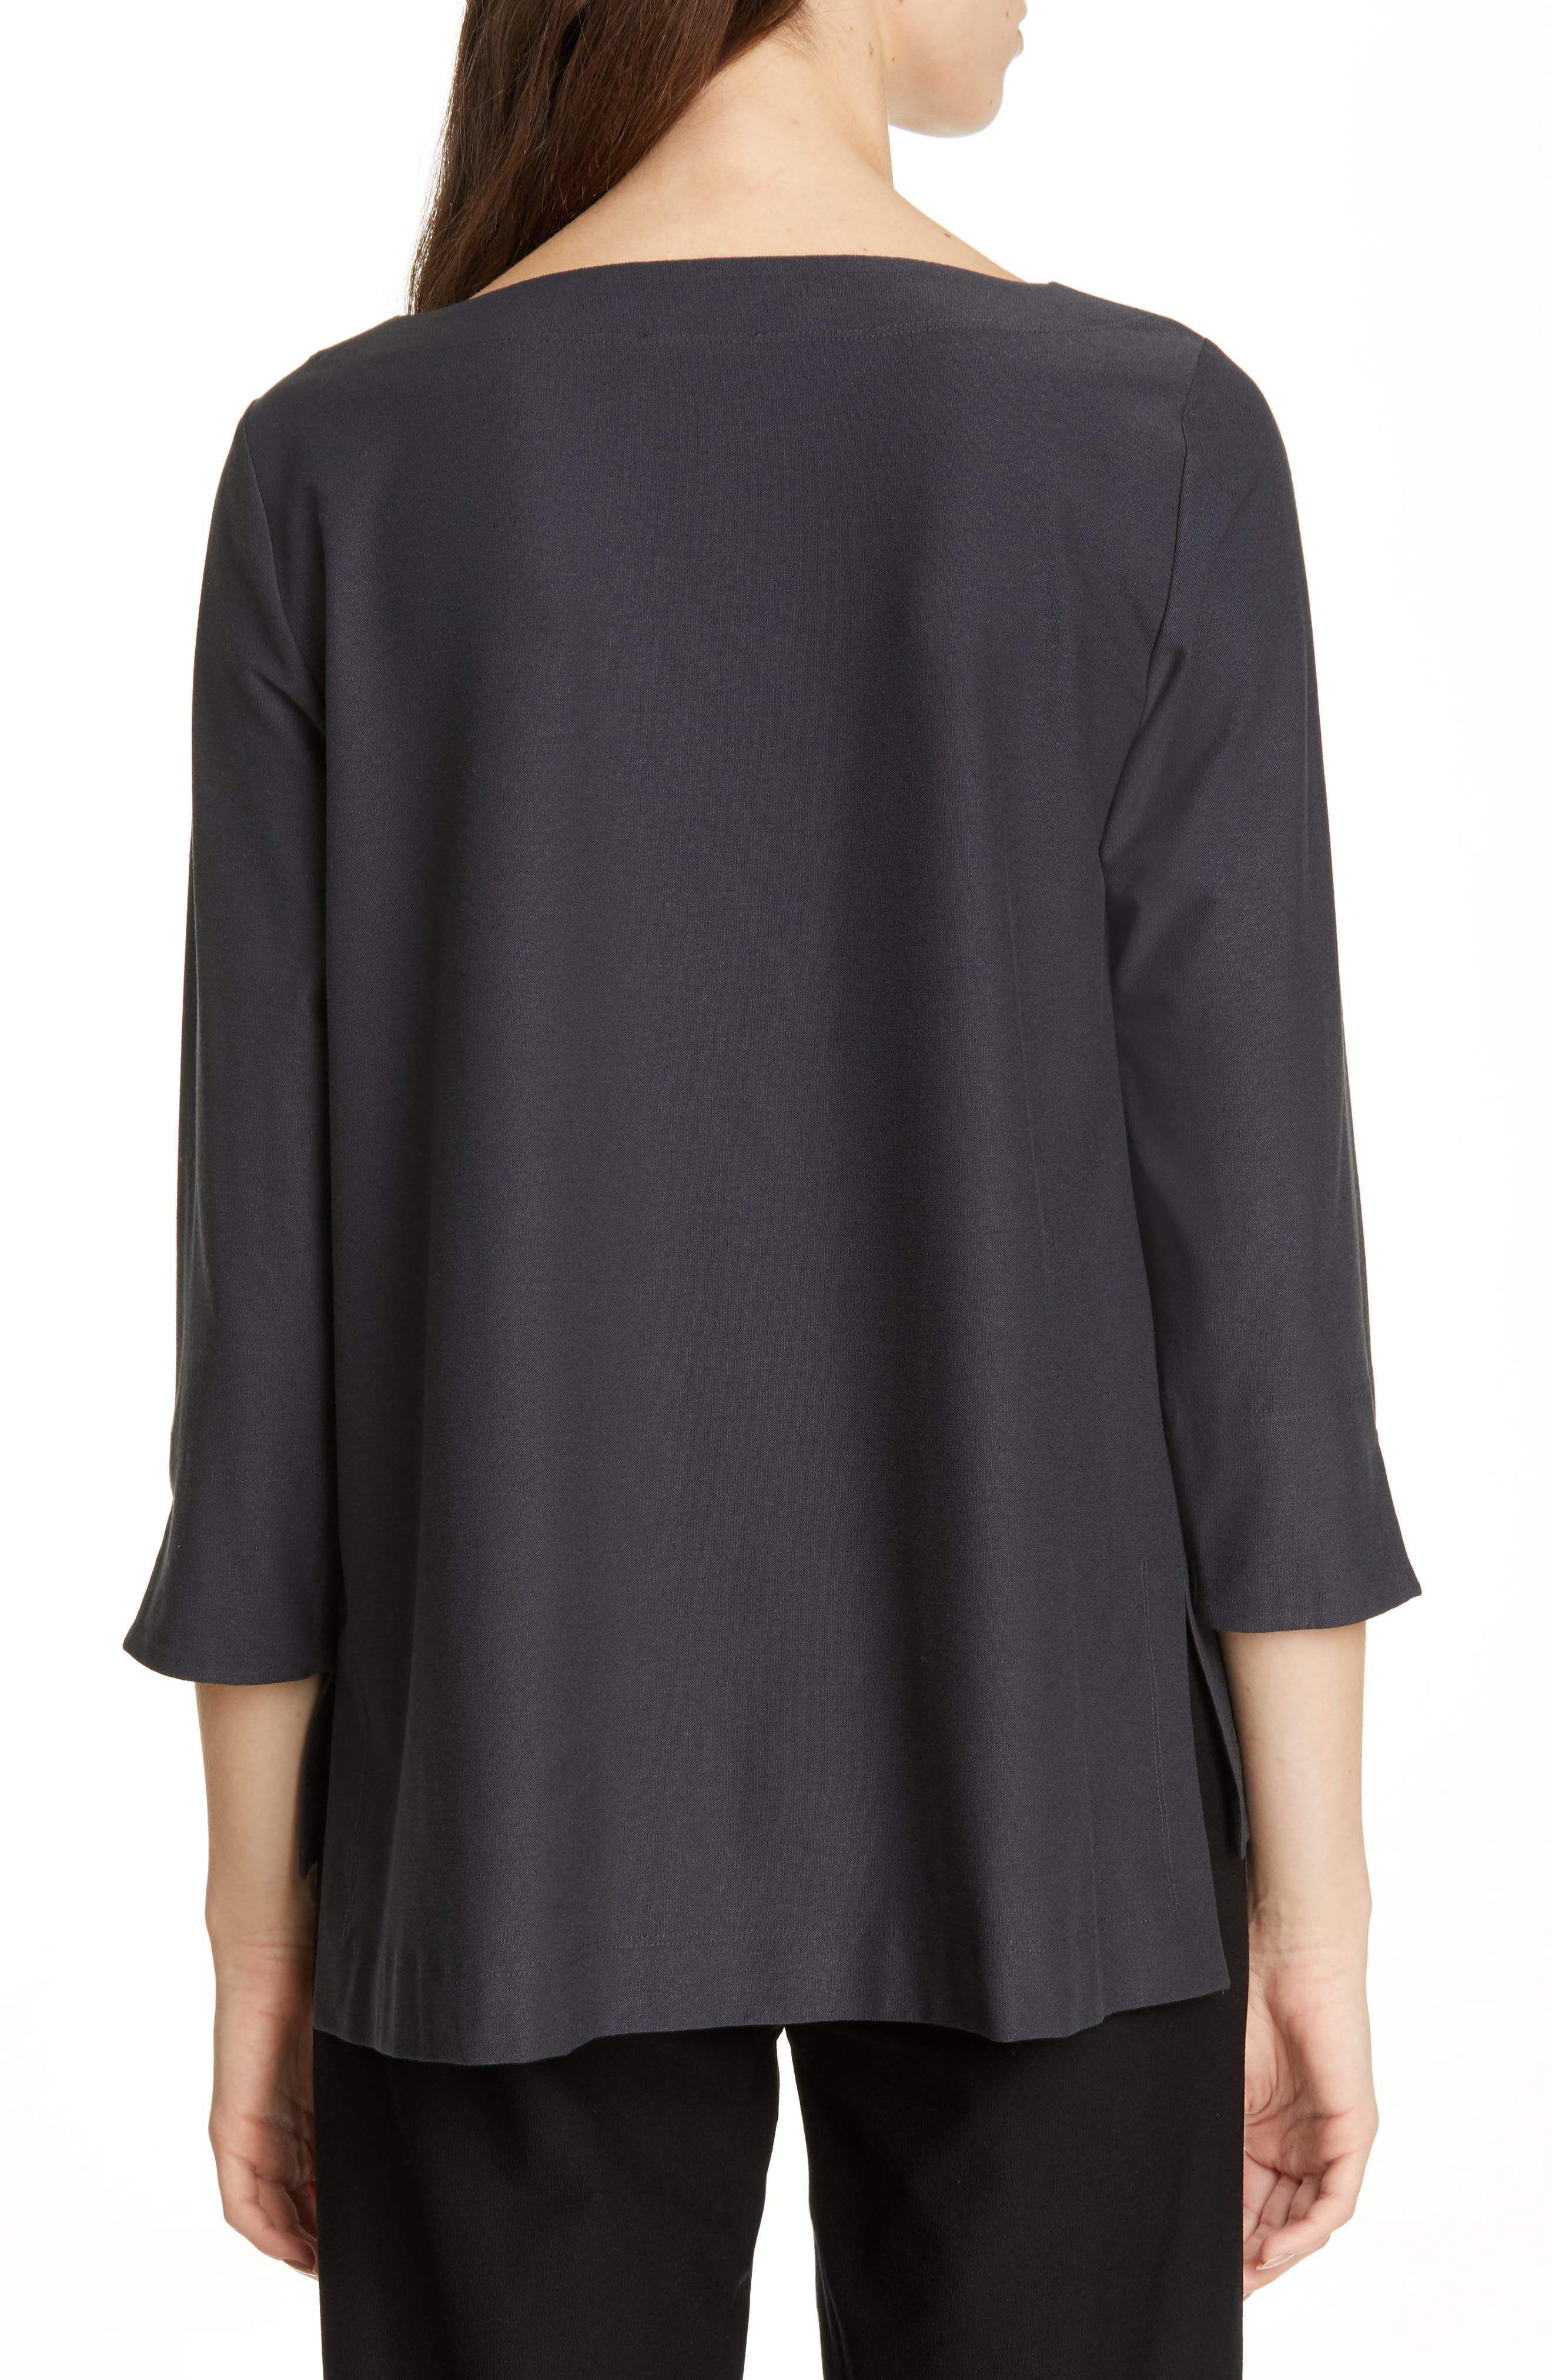 EILEEN FISHER,                             Boxy Jersey Top,                             Alternate thumbnail 2, color,                             GRAPHITE